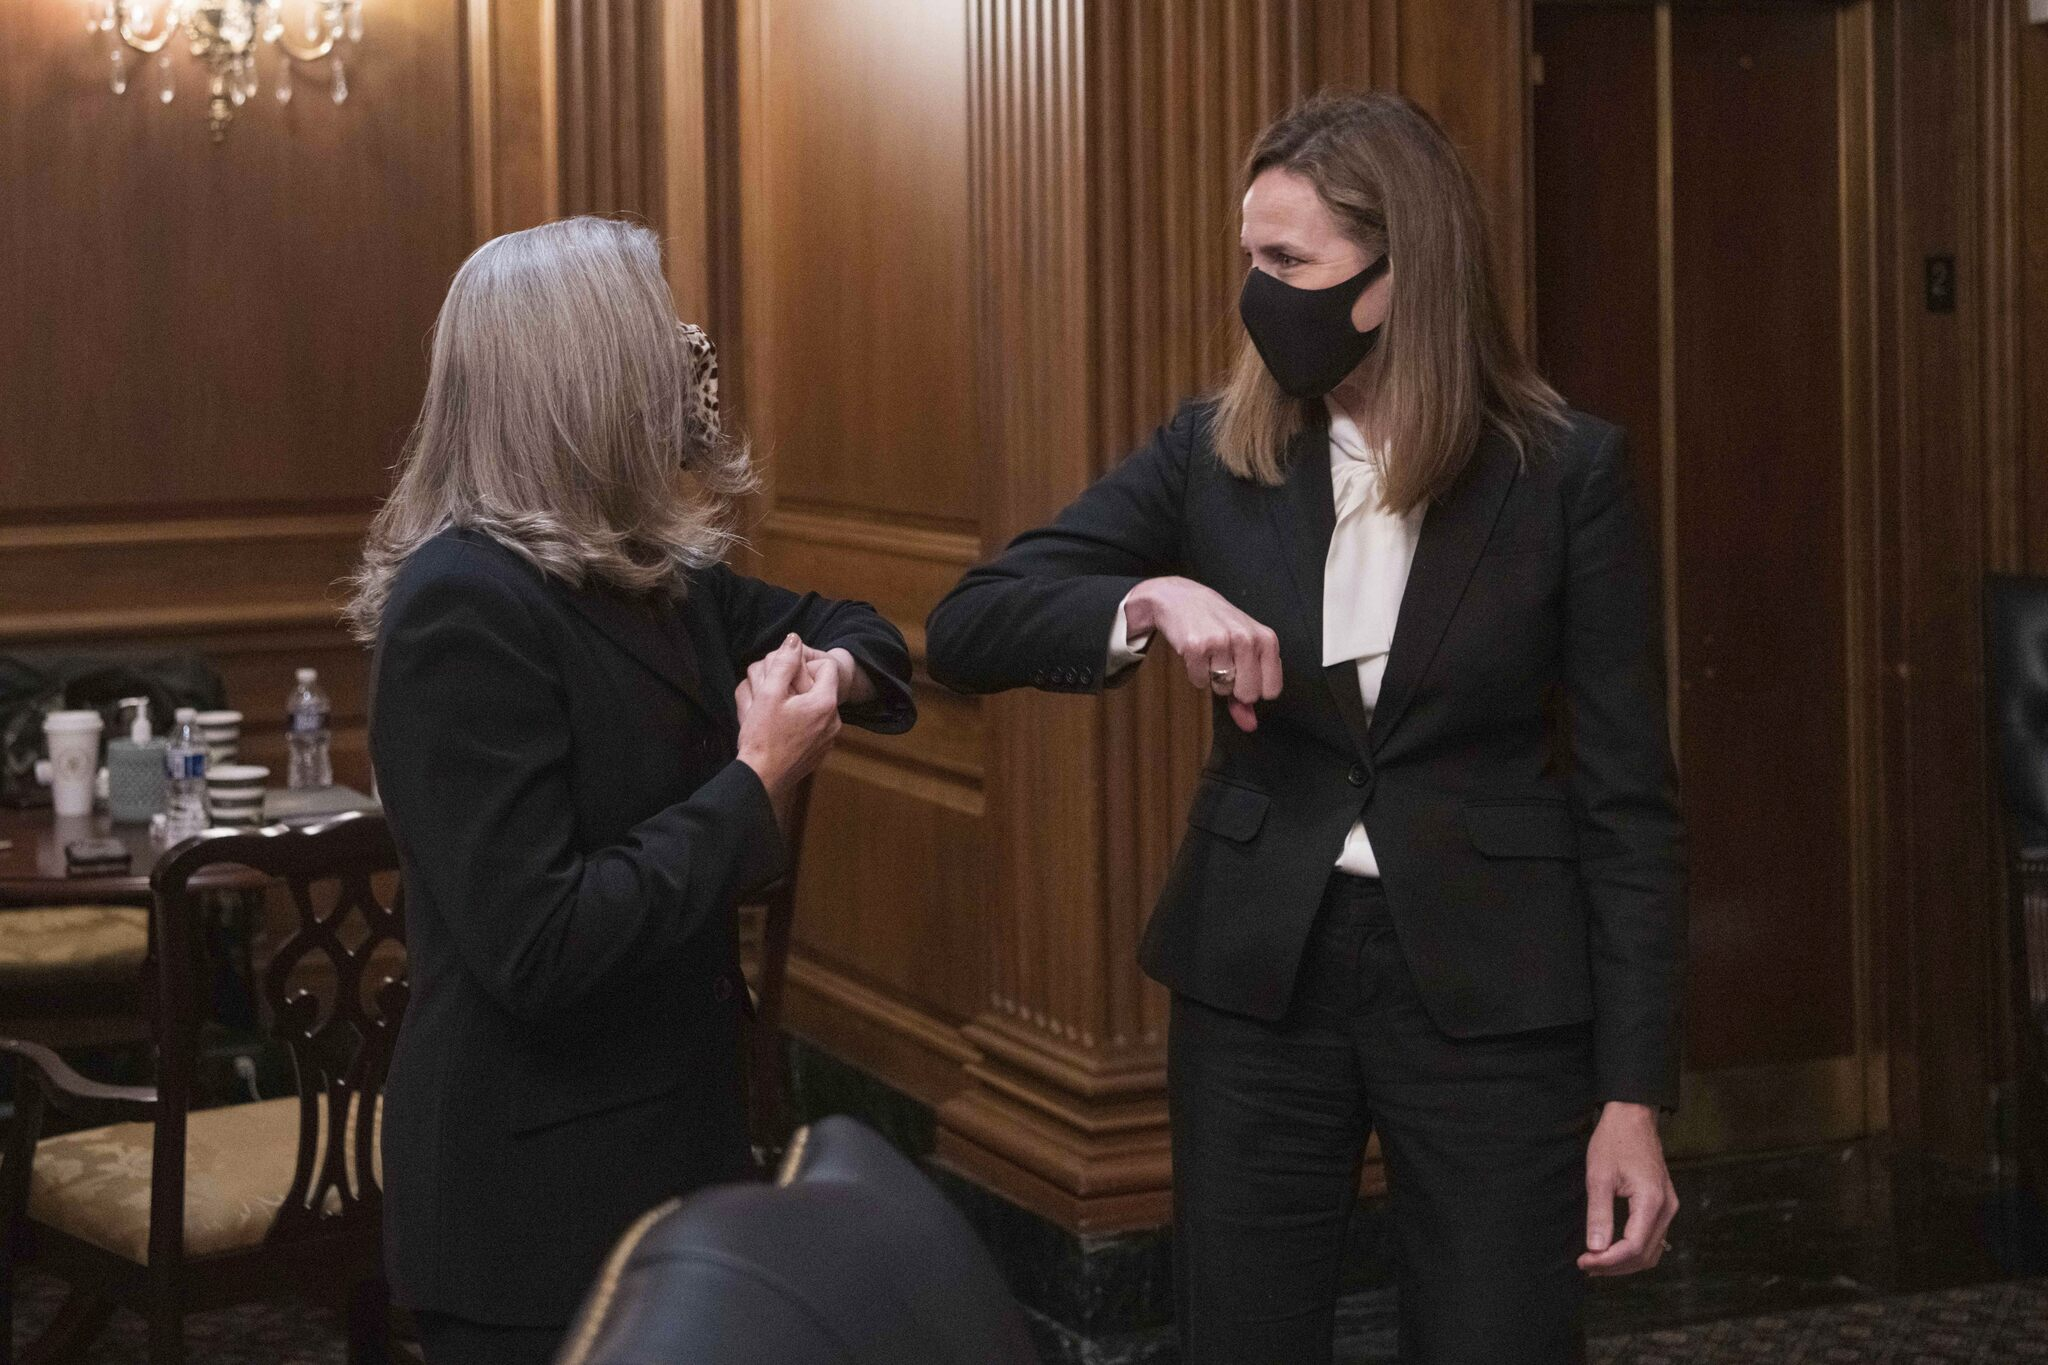 Ernst works to appeal to female voters by holding up Judge Barrett as a trailblazer like RBG